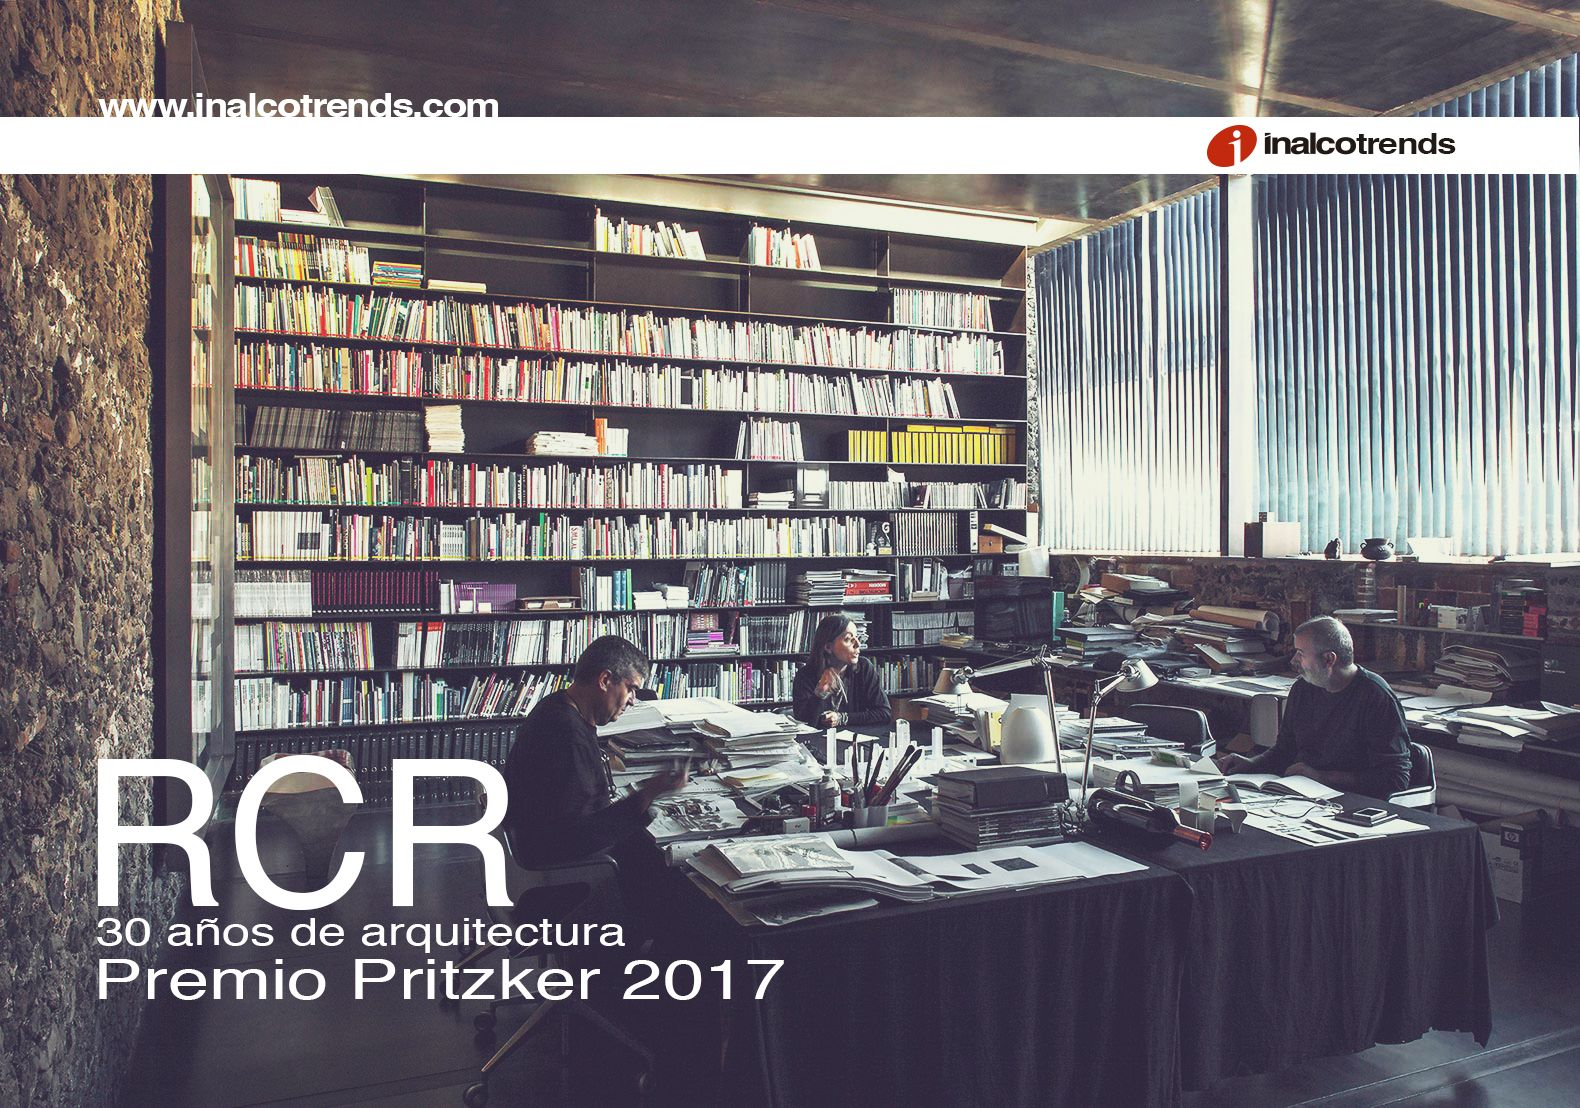 We highlight on Inalcotrends the RCR Architecture Studio in Girona (Spain), awarded with the prestigious Pritzker 2017 Architecture Award.